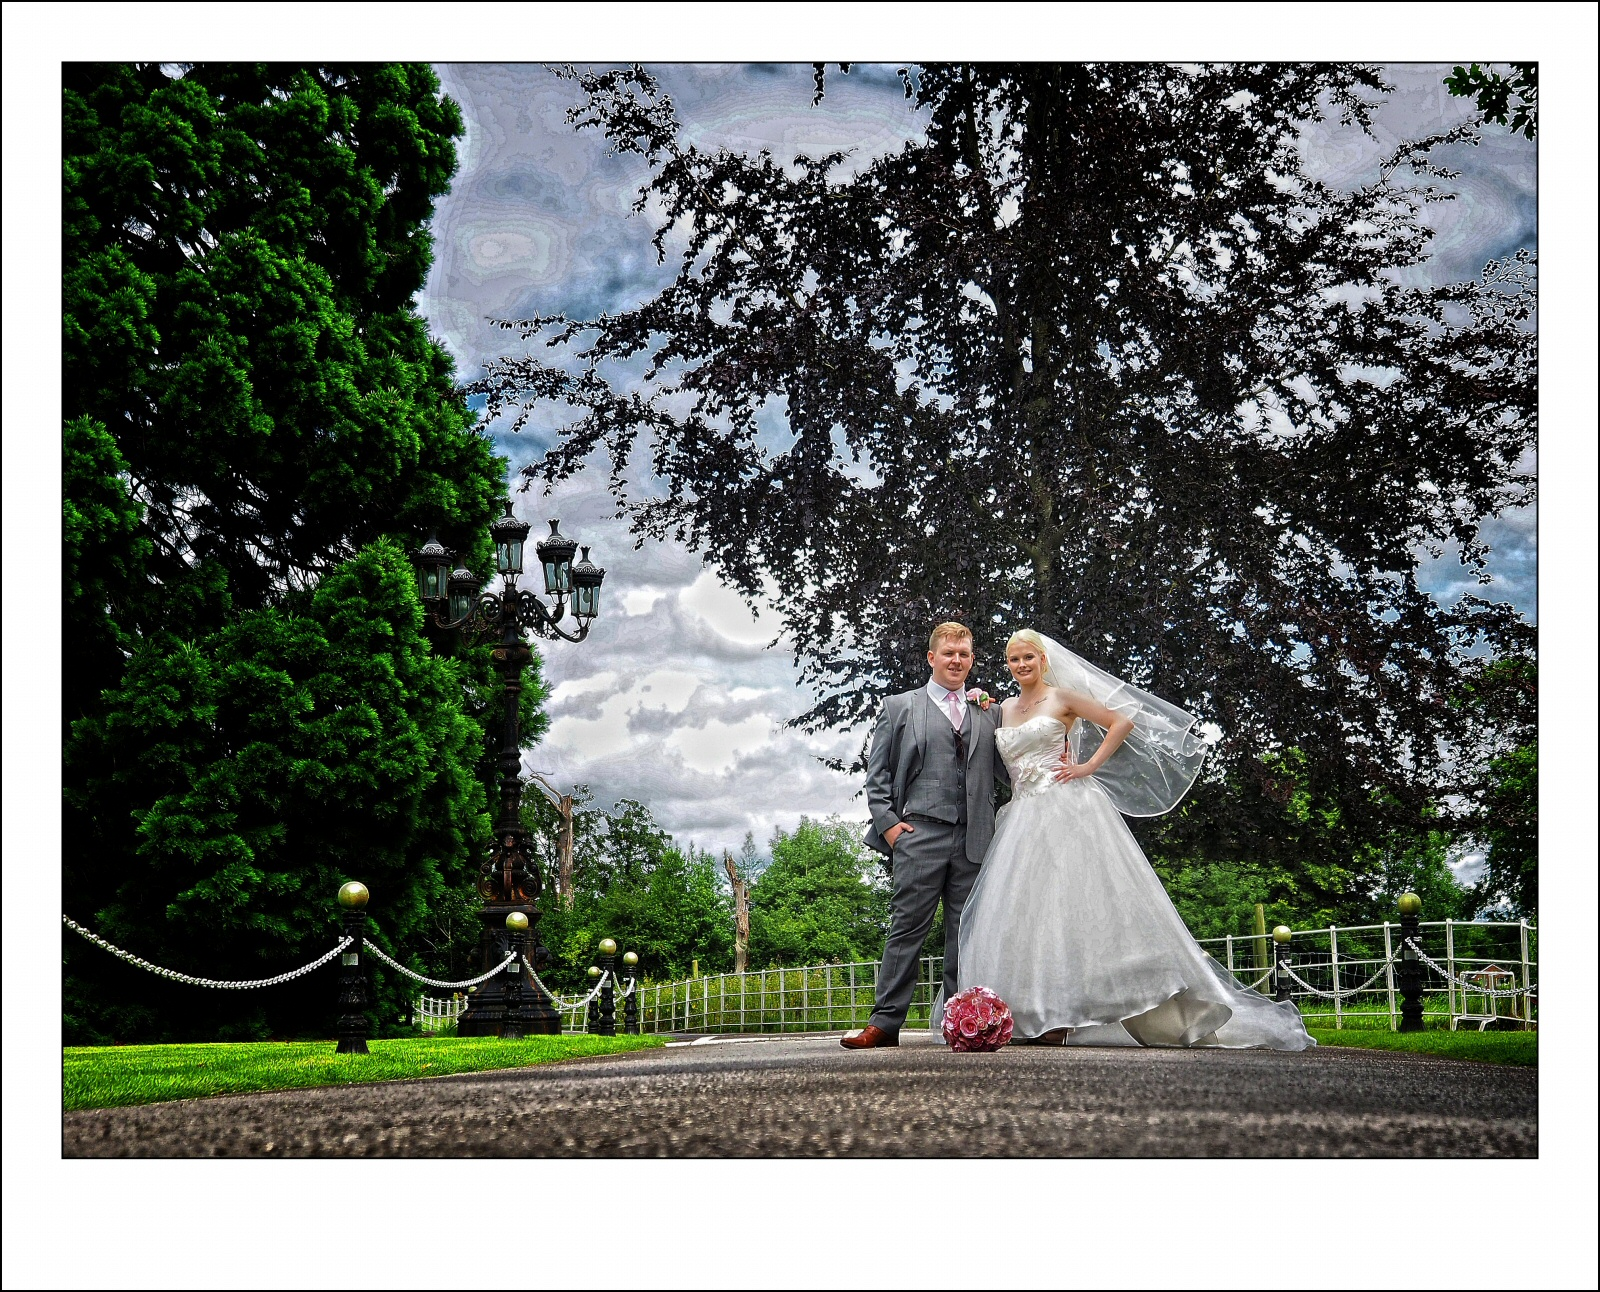 stunning and vibrant wedding photography at rossett